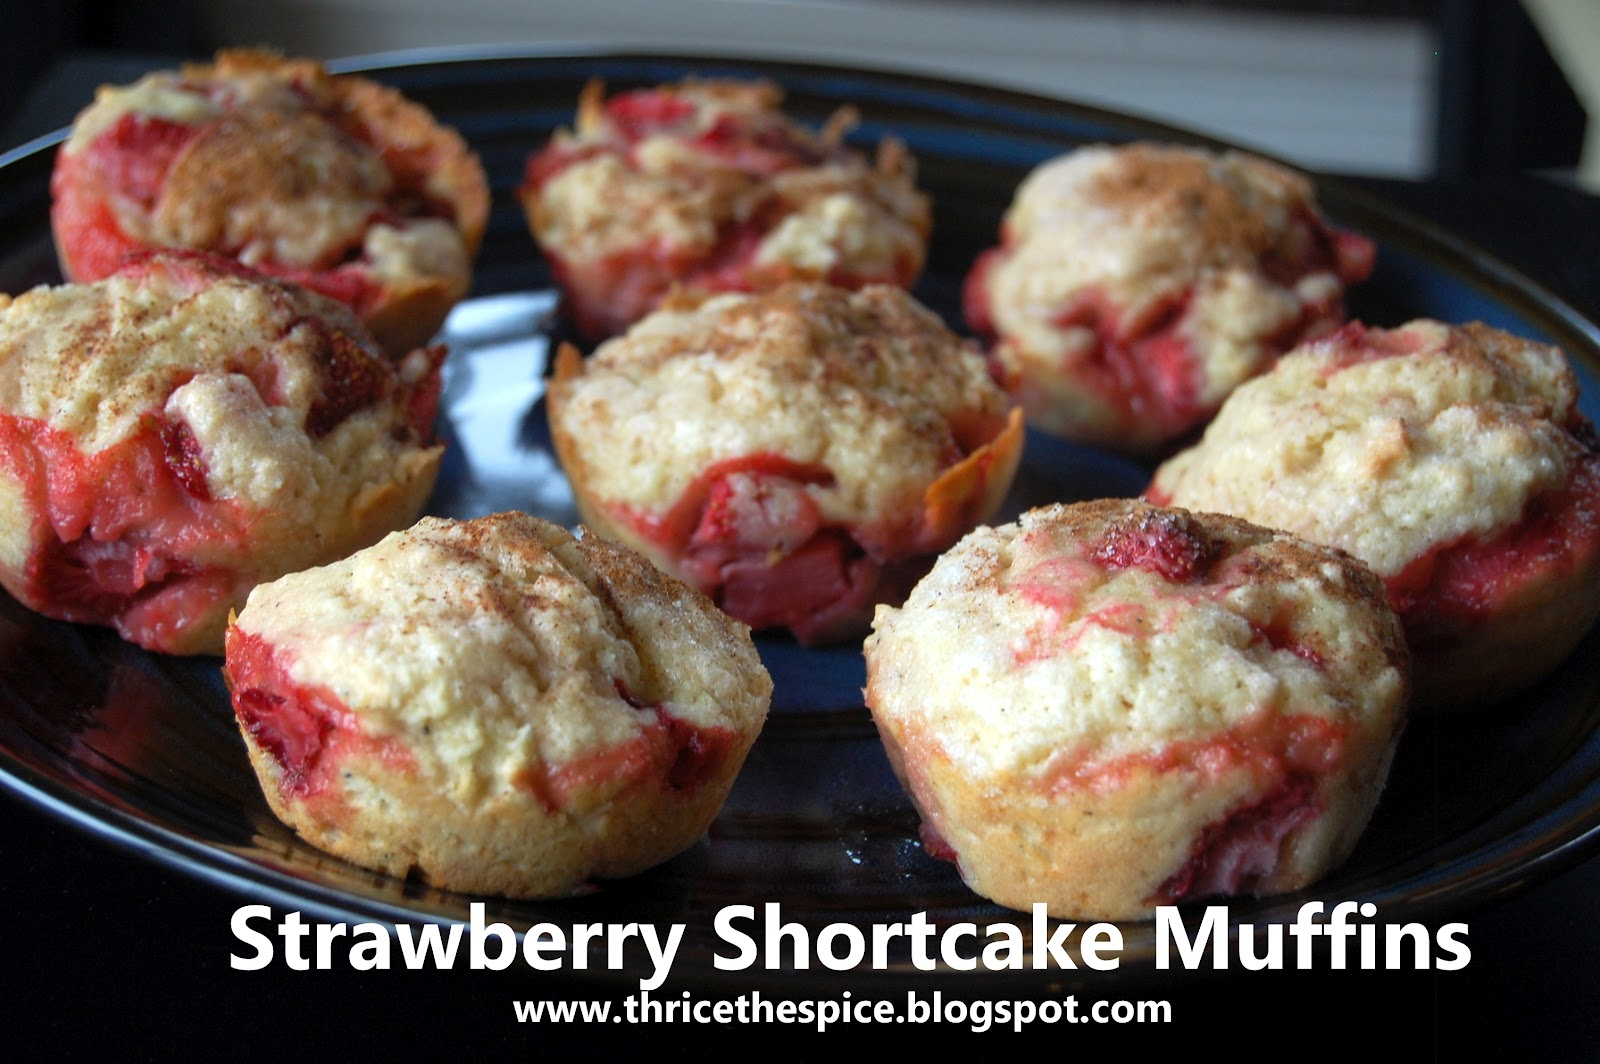 ThriceTheSpice: Strawberry Shortcake Muffins